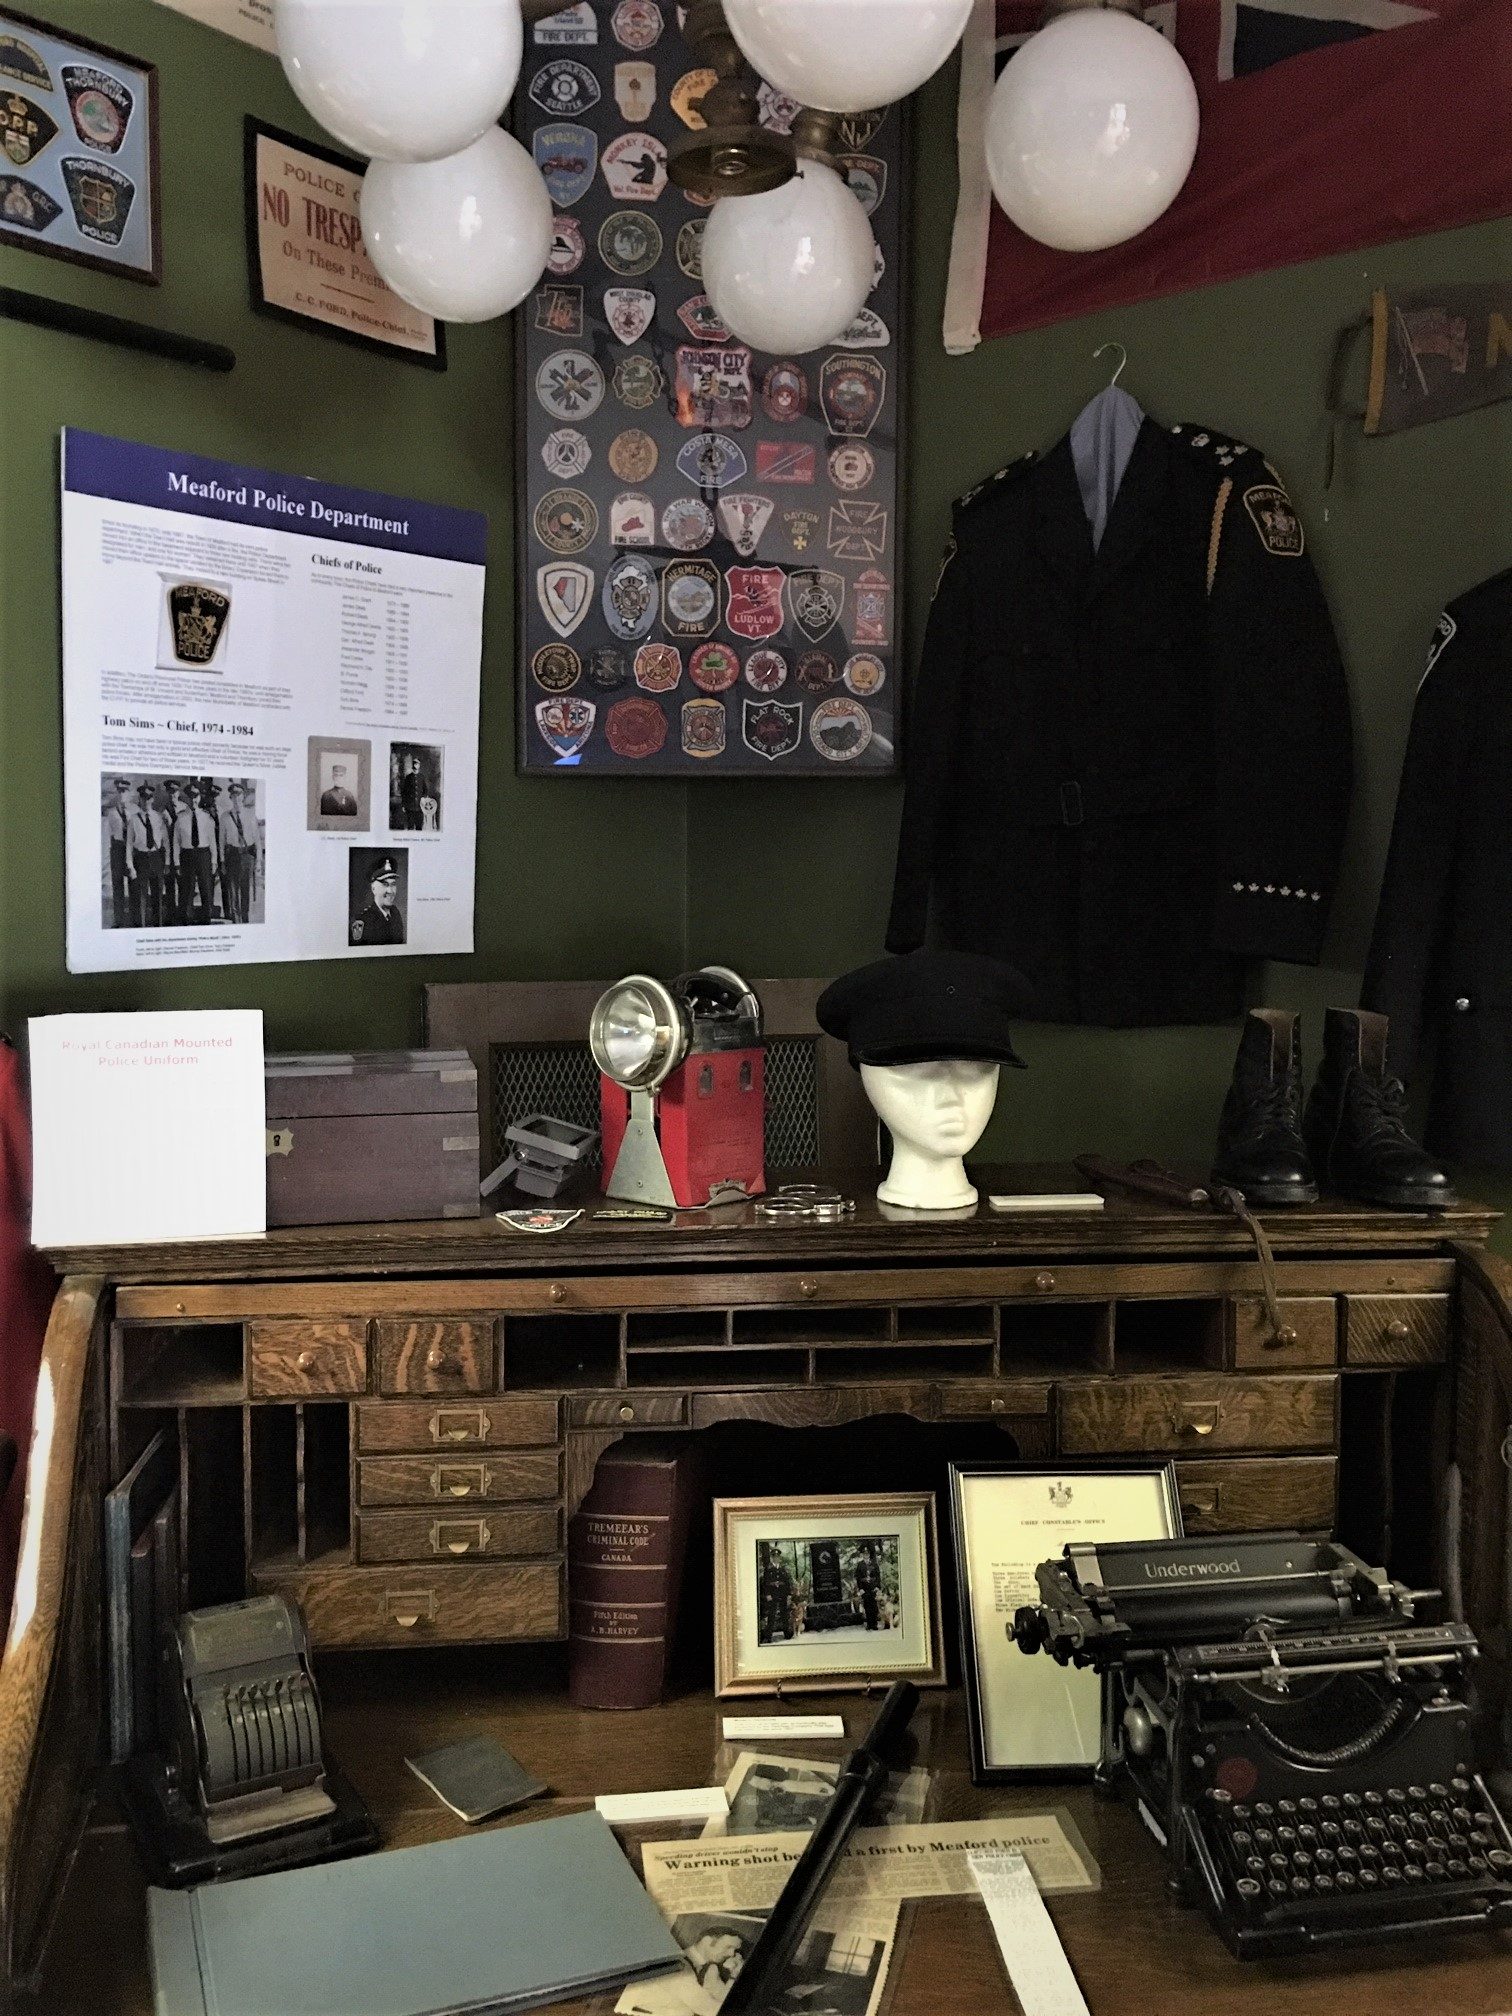 a Museum display with a large antique desk and RCMP and police artifacts